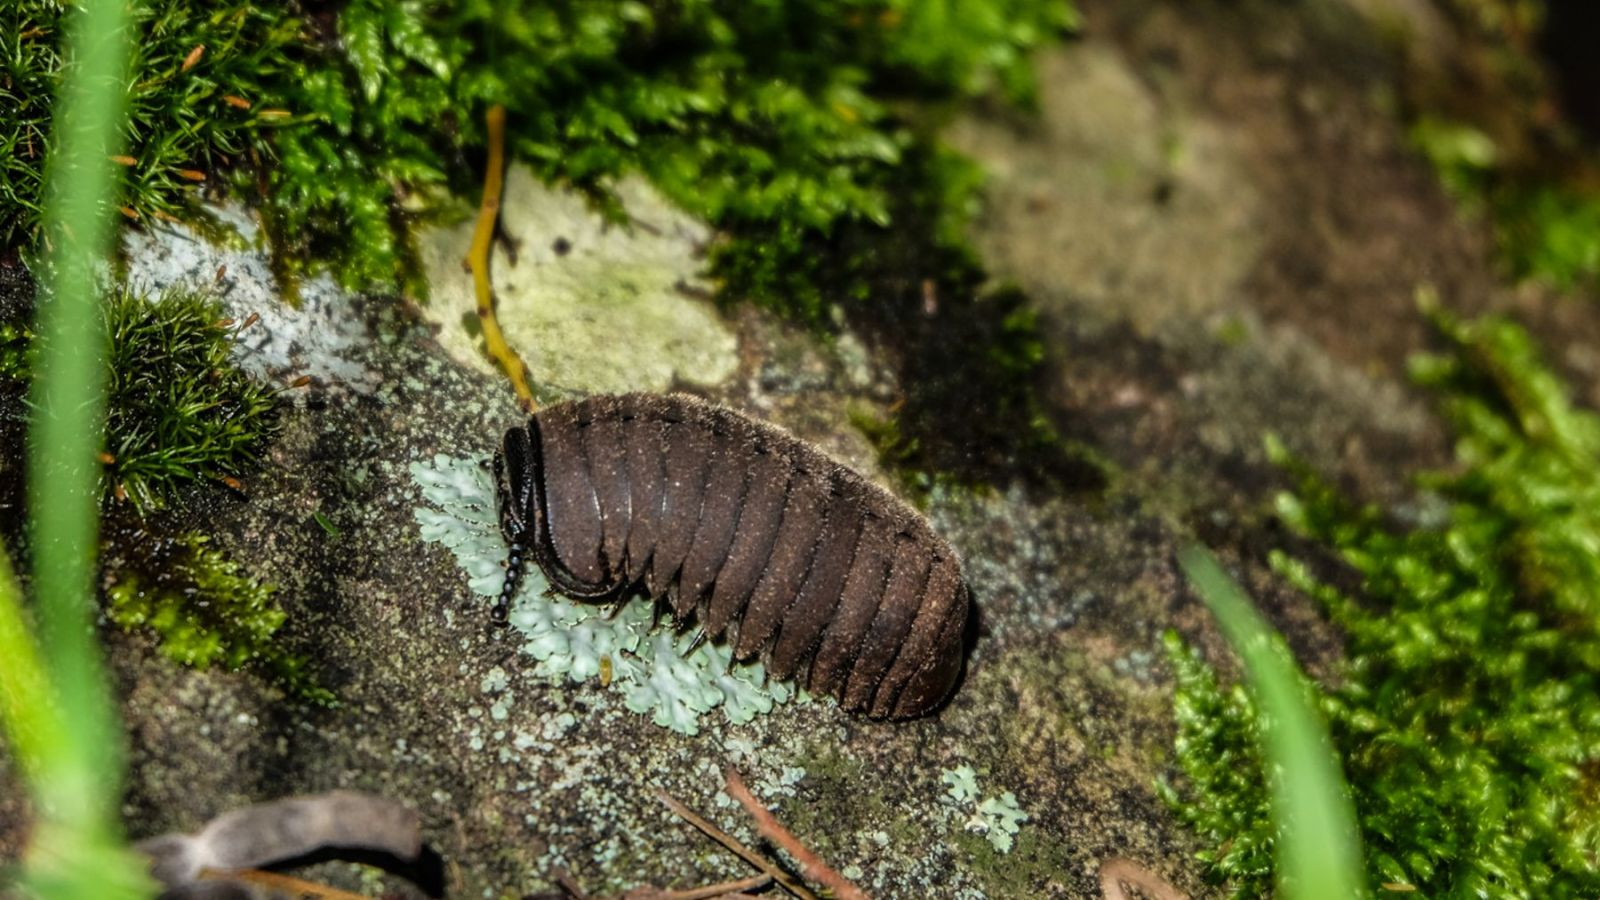 a photo of a Isopod on the amathole trail in south africa.